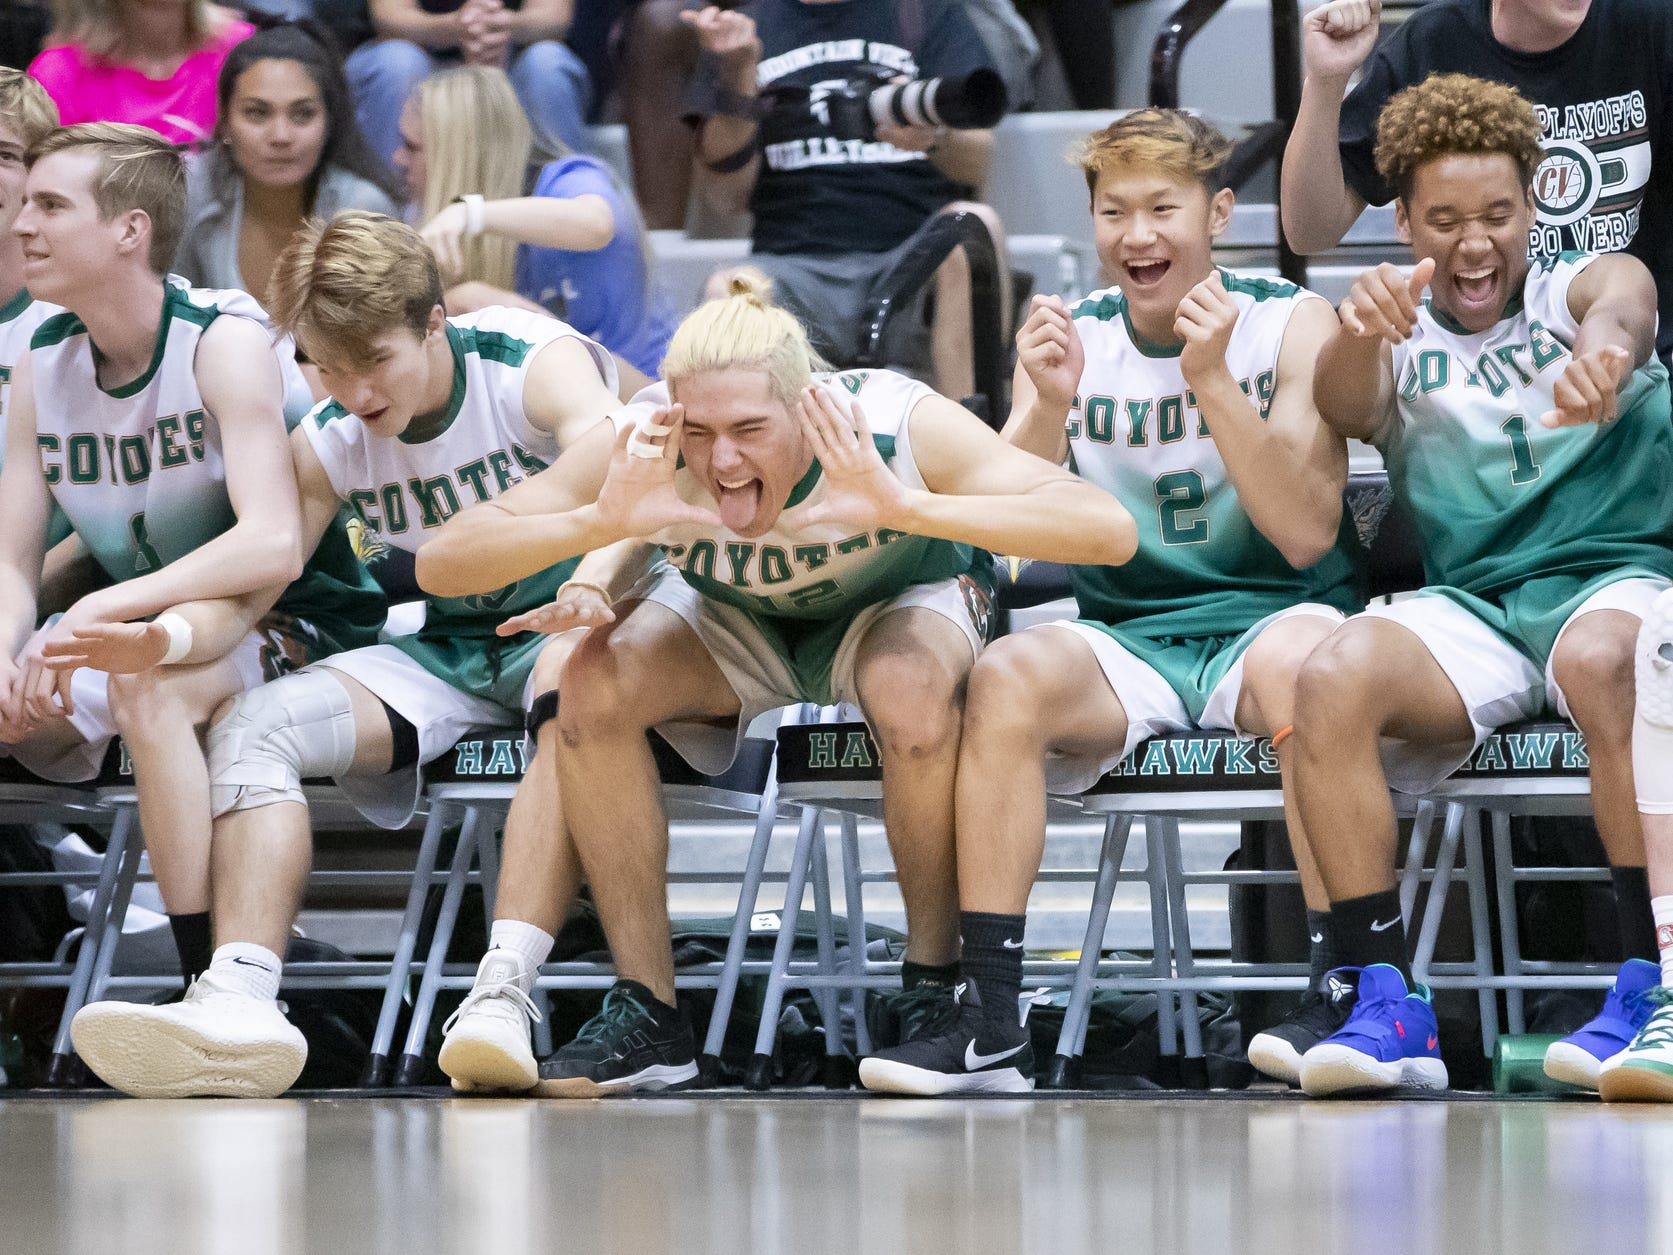 The Campo Verde Coyotes bench cheers during the 5A Boys Volleyball State Championships against the Tucson Mountain View Mountain Lions at Higley High School on Saturday, May 11, 2019 in Gilbert, Arizona.